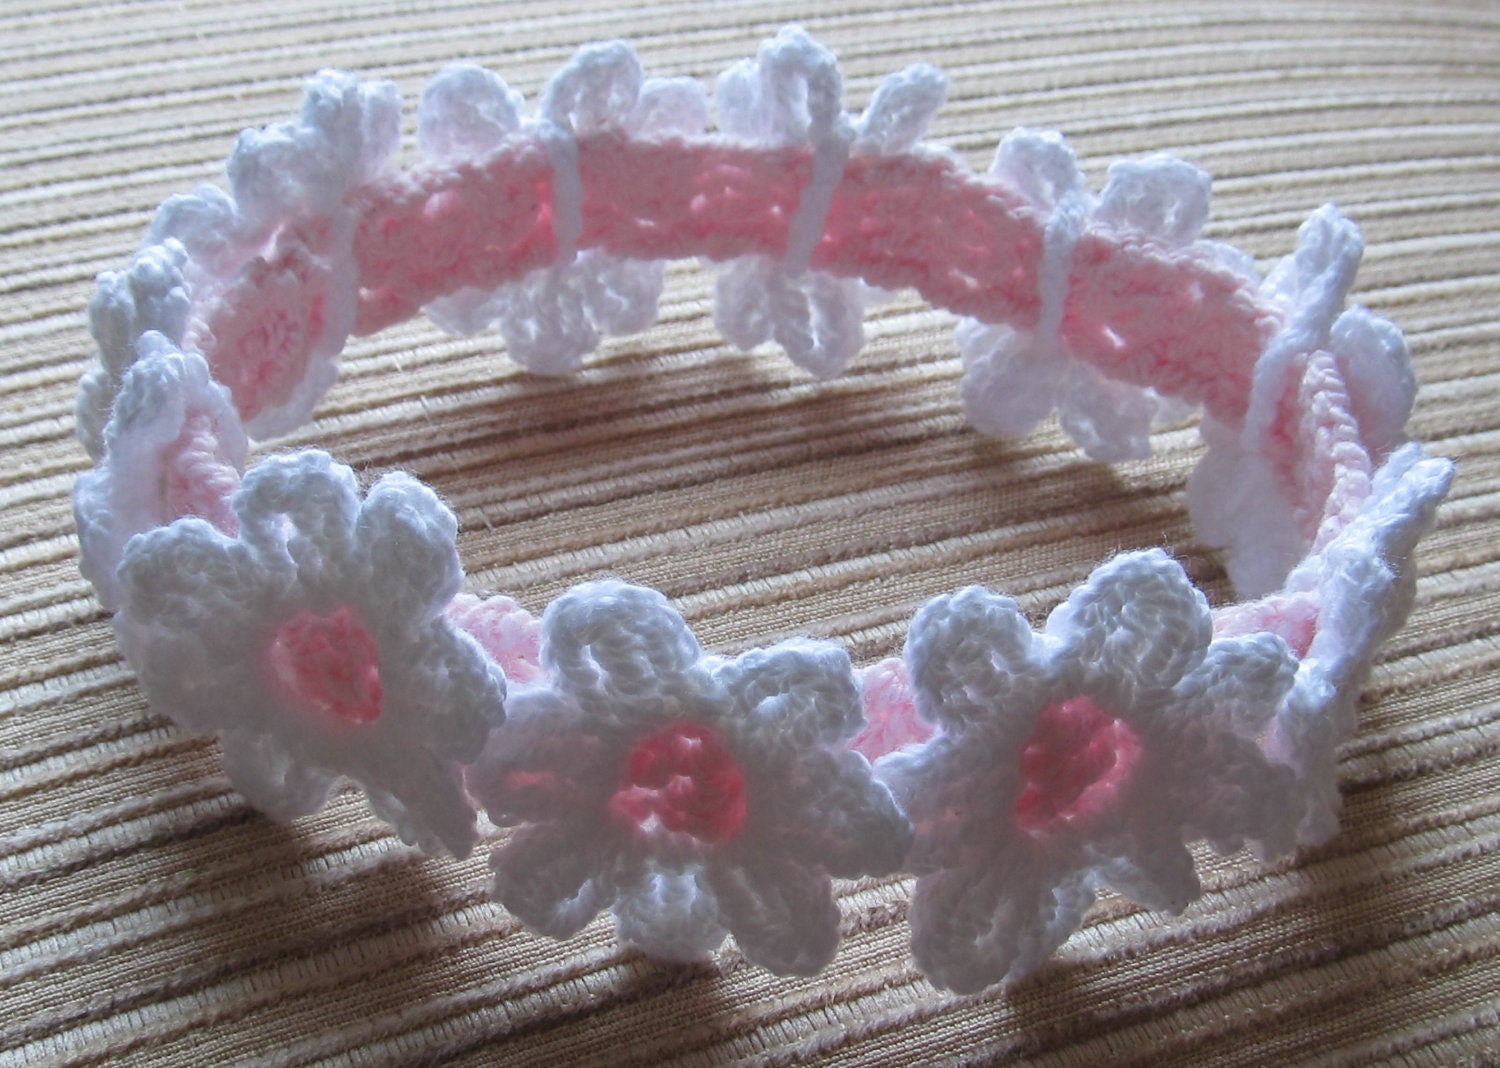 Crochet Headband Pattern For Baby With Flower : Instant Download 59 Crochet Pattern Baby Headband With White